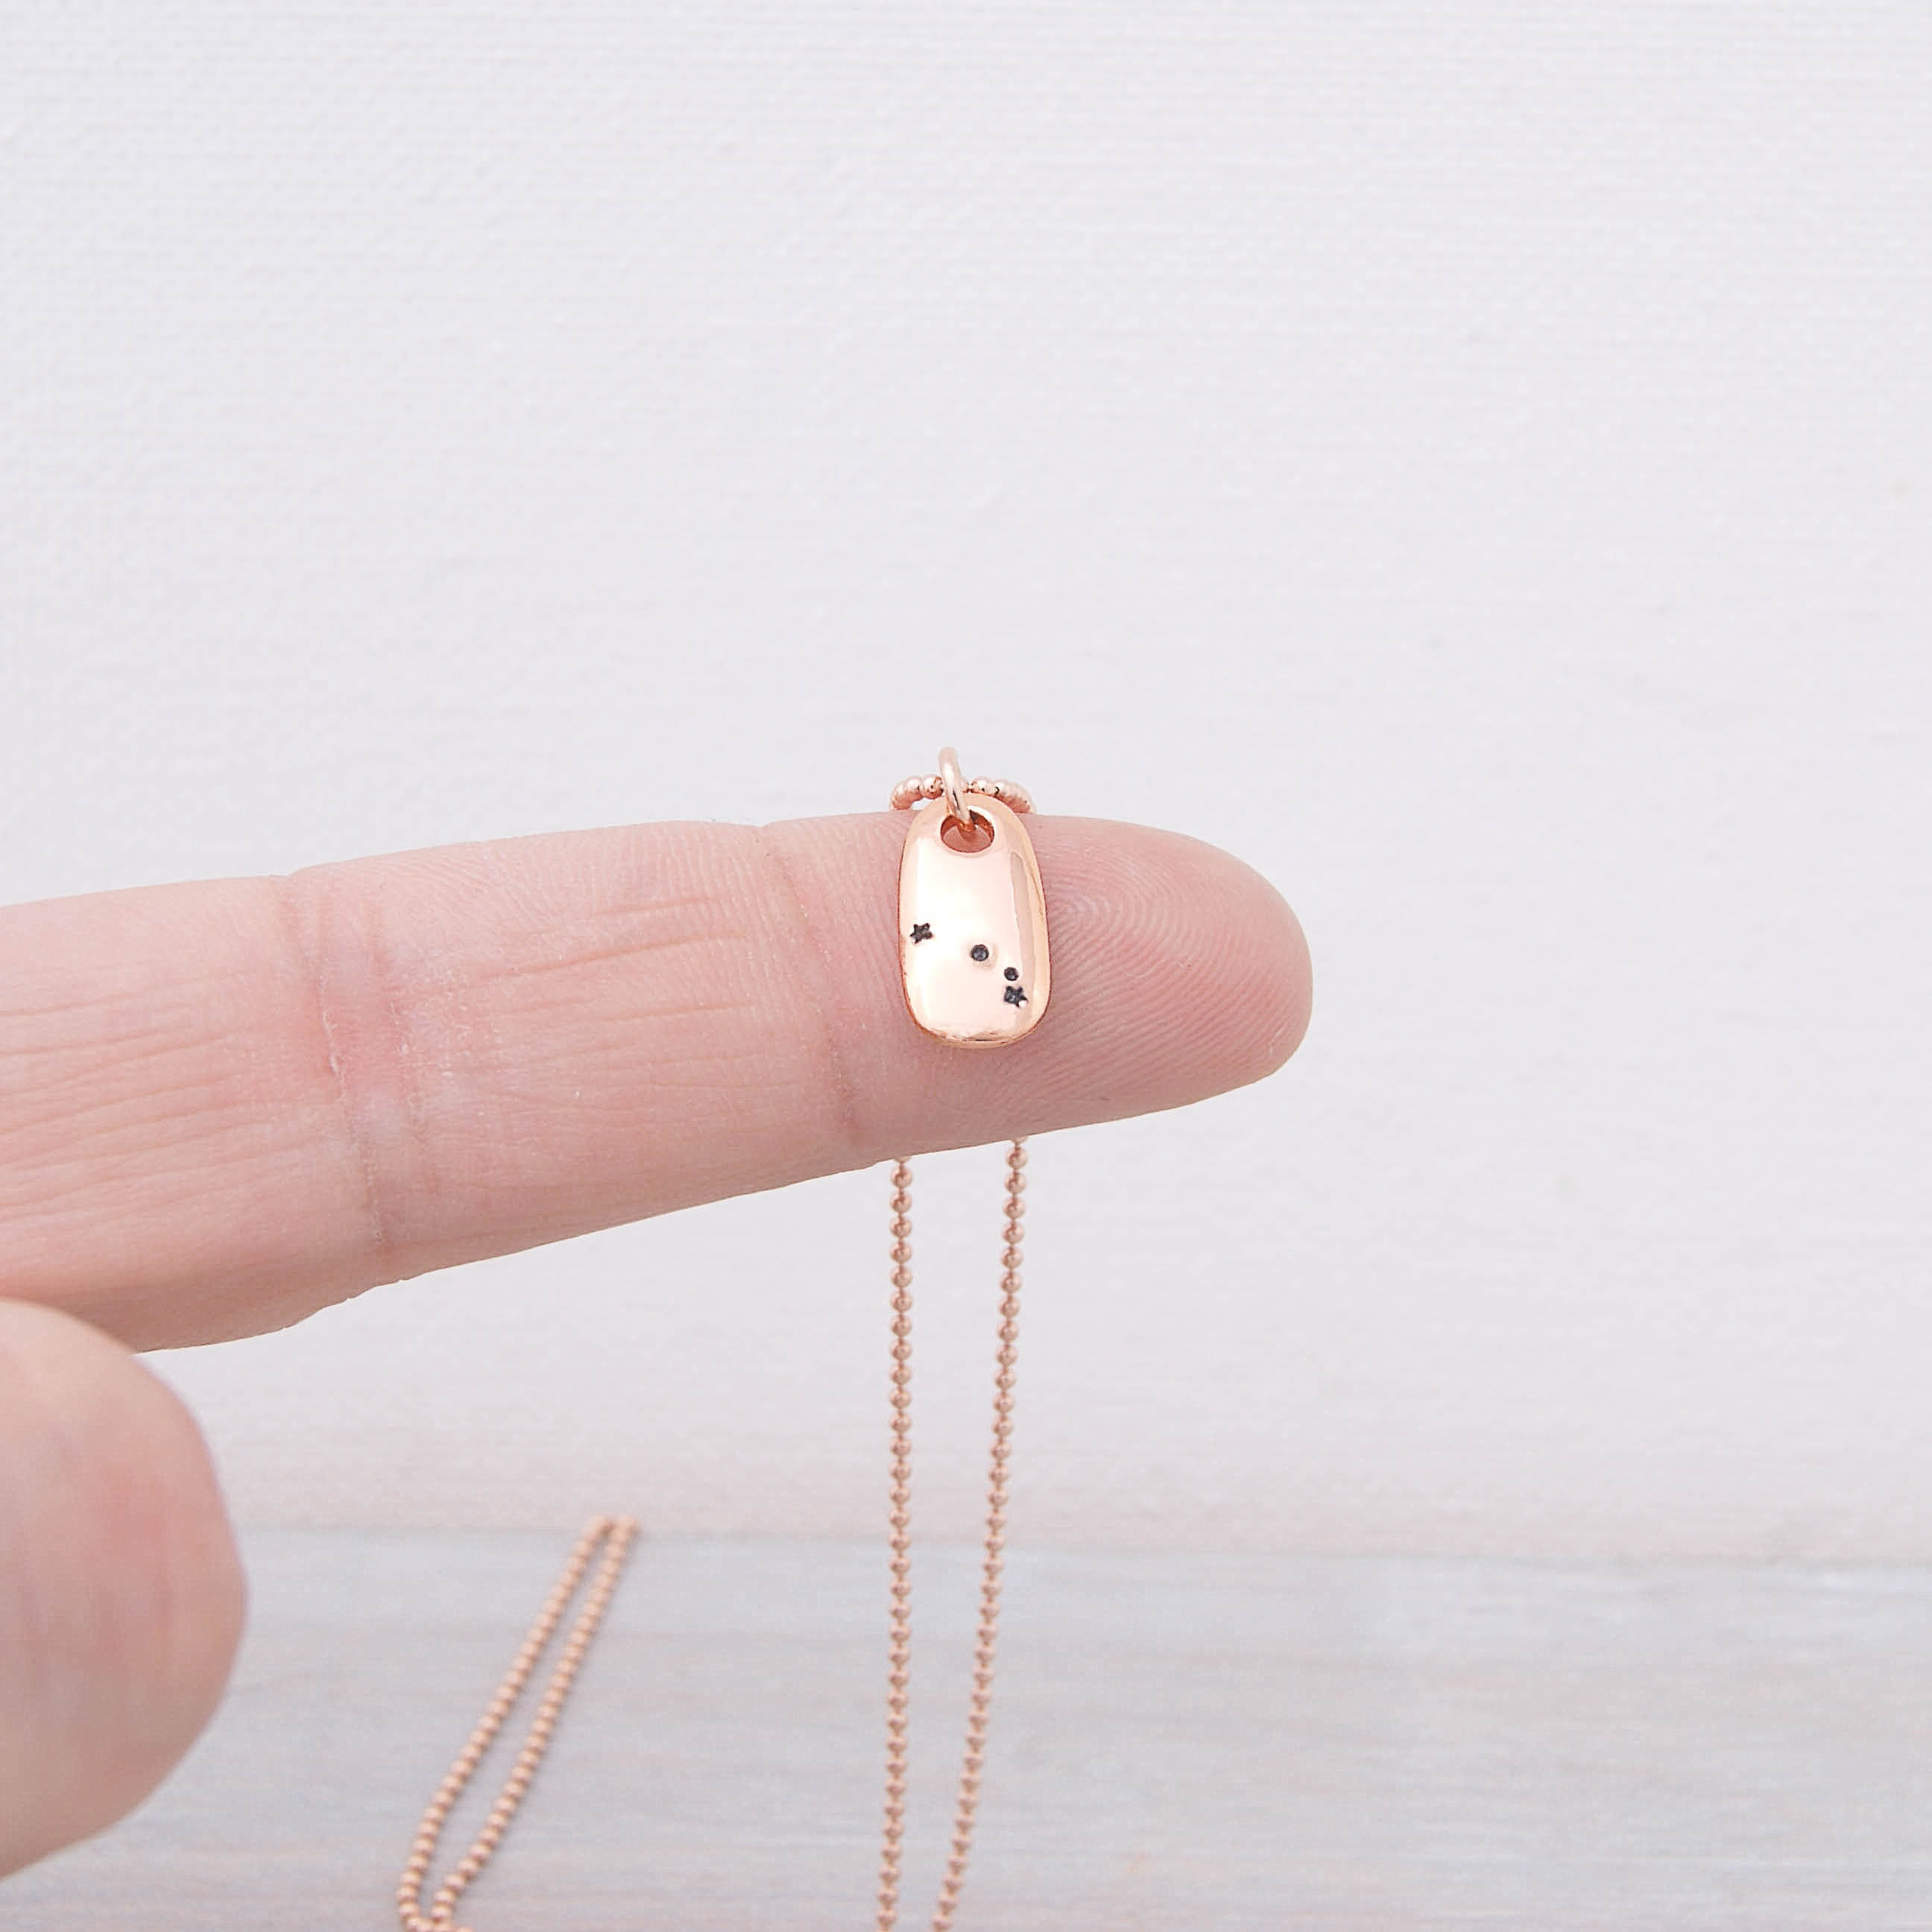 Aries Constellation Zodiac Rose Gold Necklace